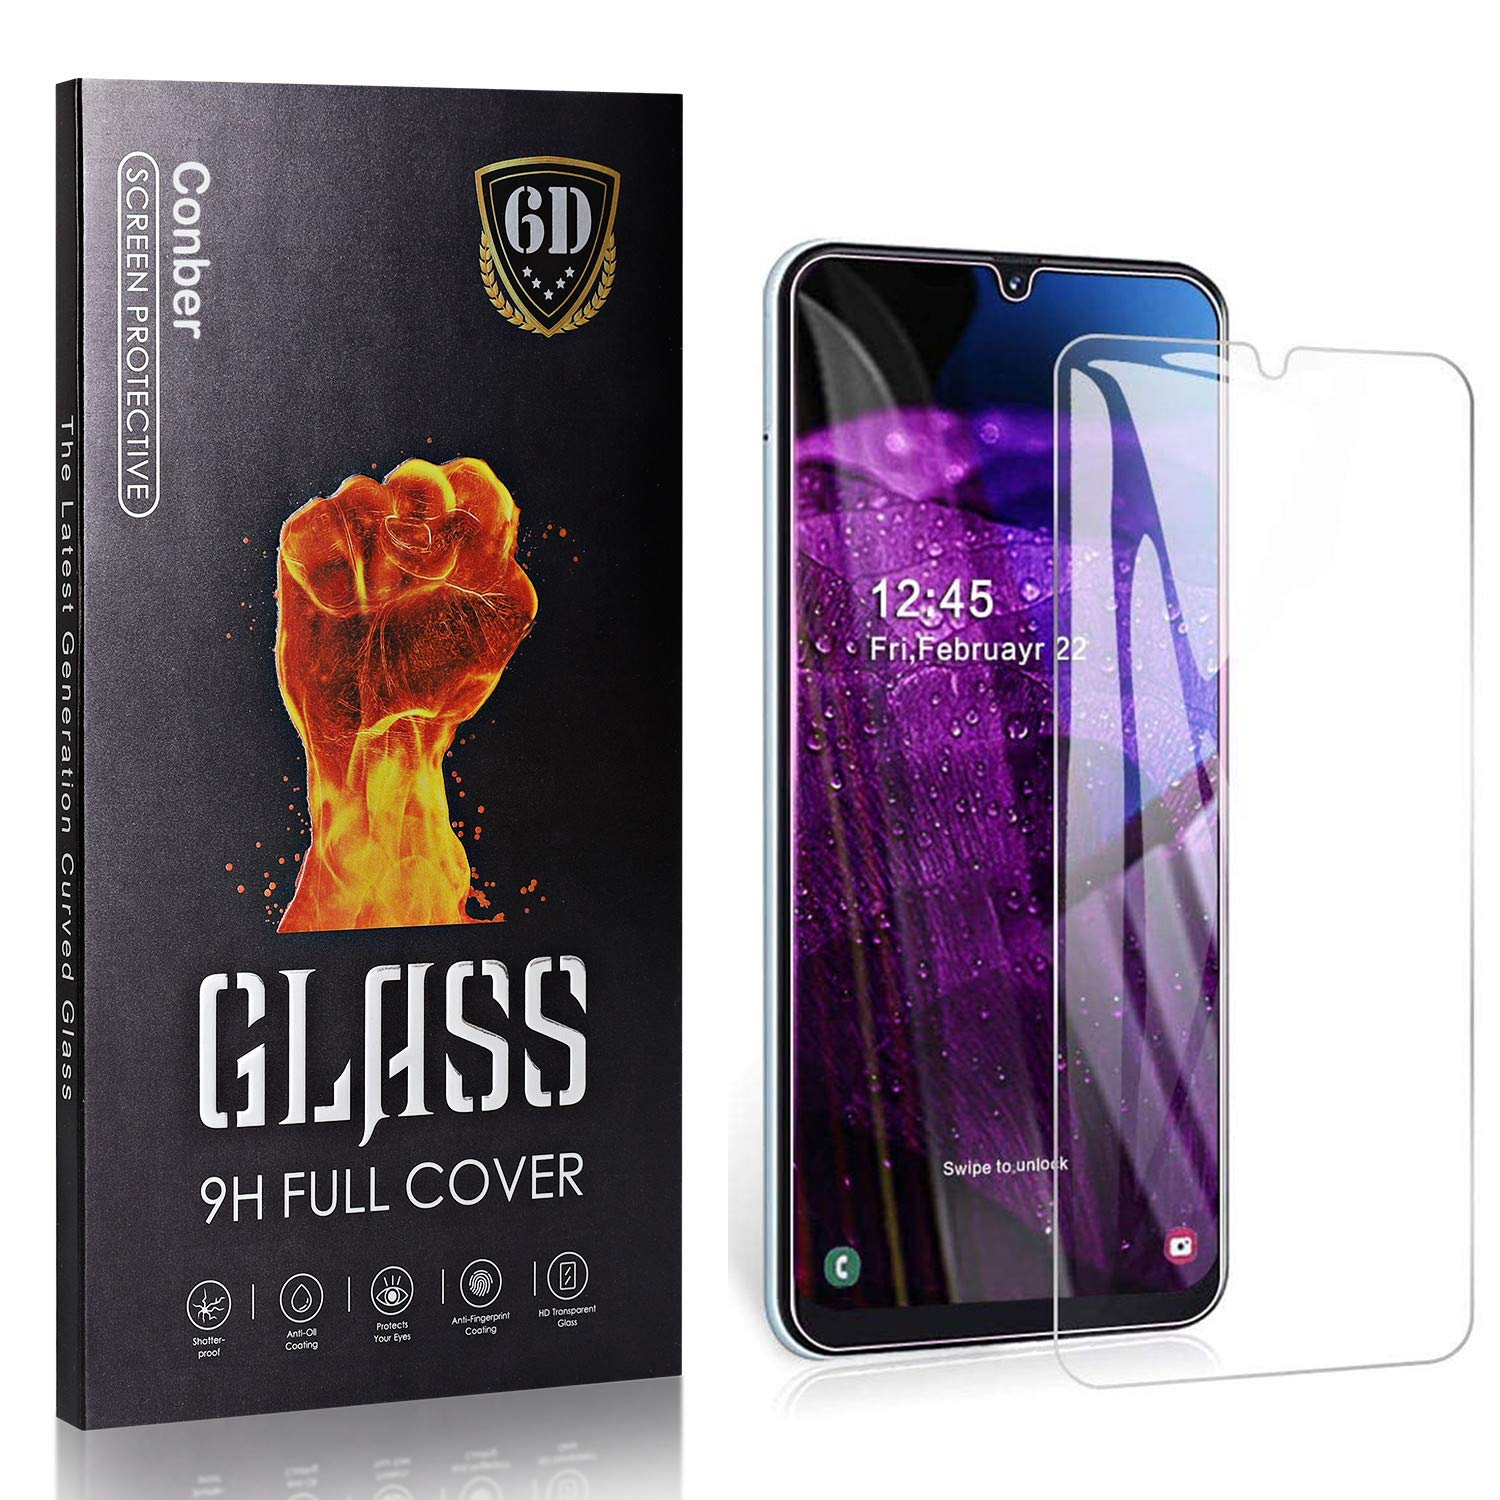 Conber 4 Pack Screen Protector for Temper A30S 5 ☆ very 70% OFF Outlet popular Samsung Galaxy